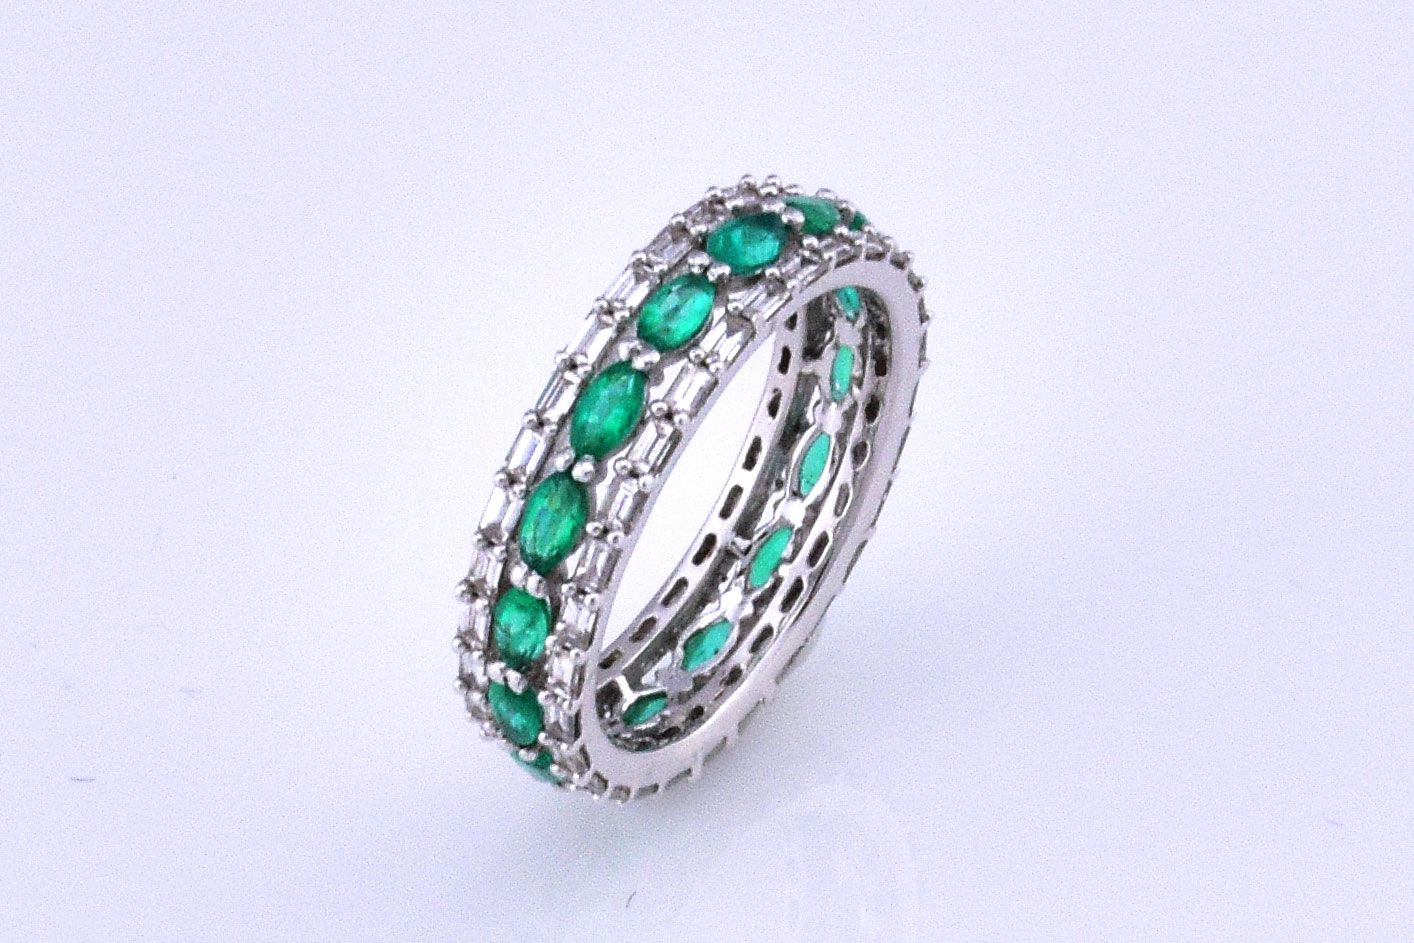 Over 1 Carat Total Weight Emerald Diamond Eternity Band